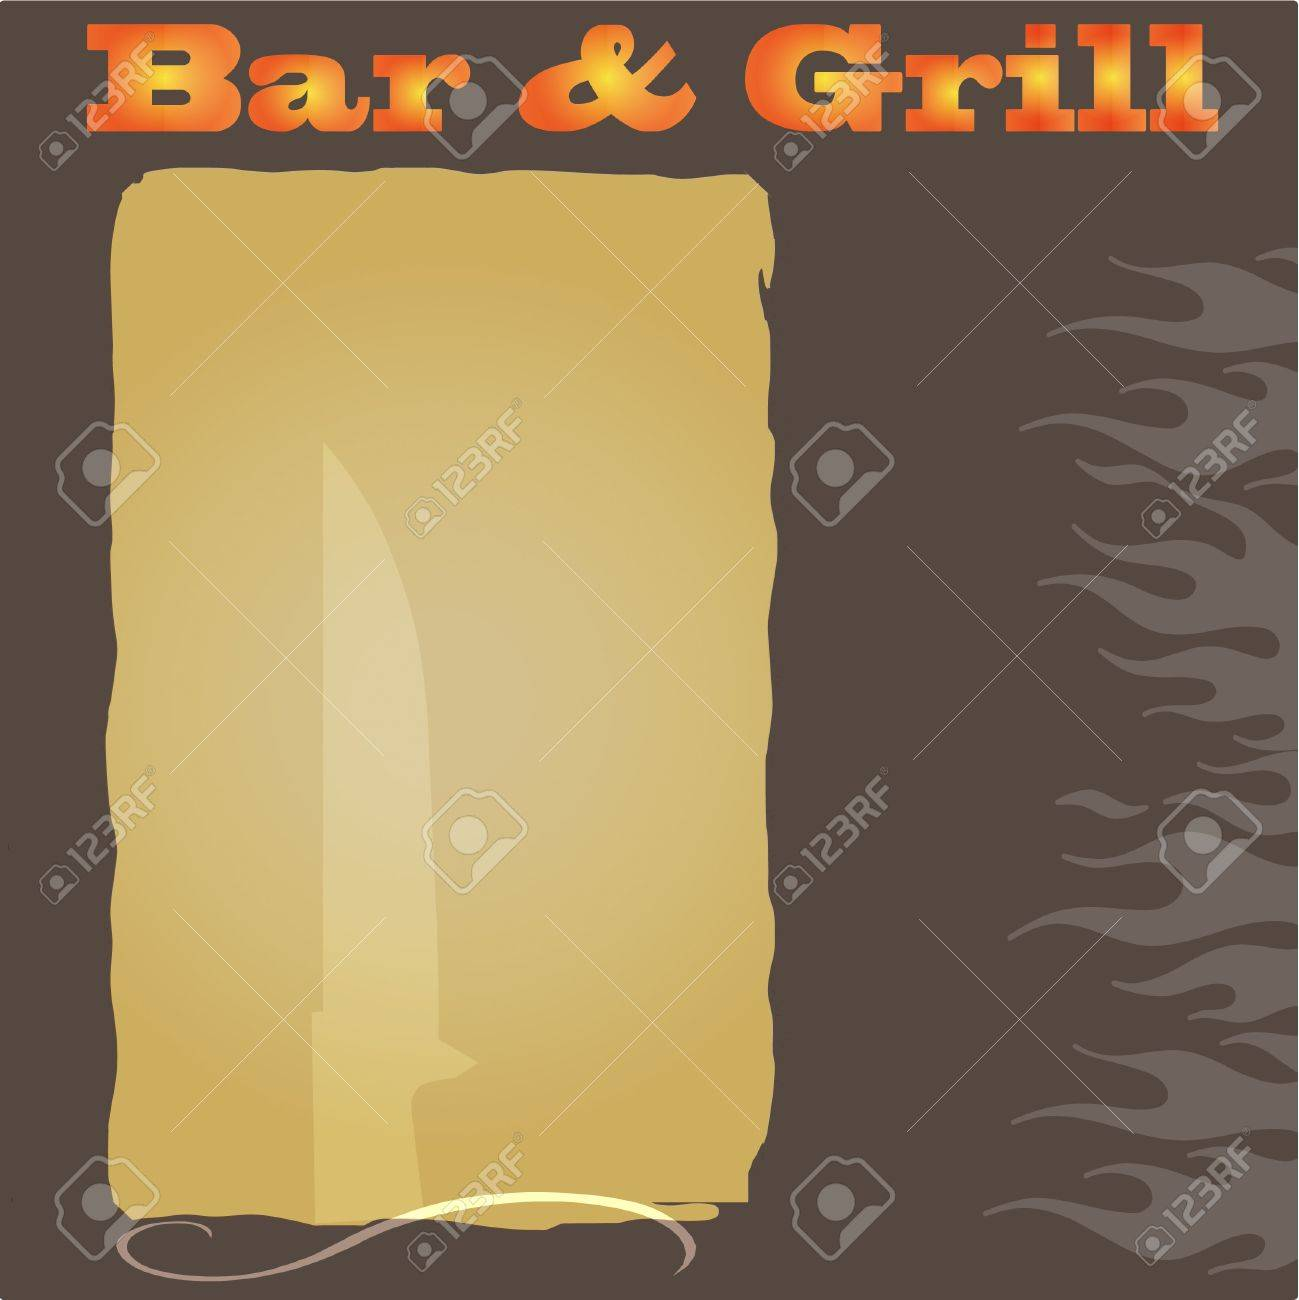 bar and grill menu background royalty free cliparts, vectors, and